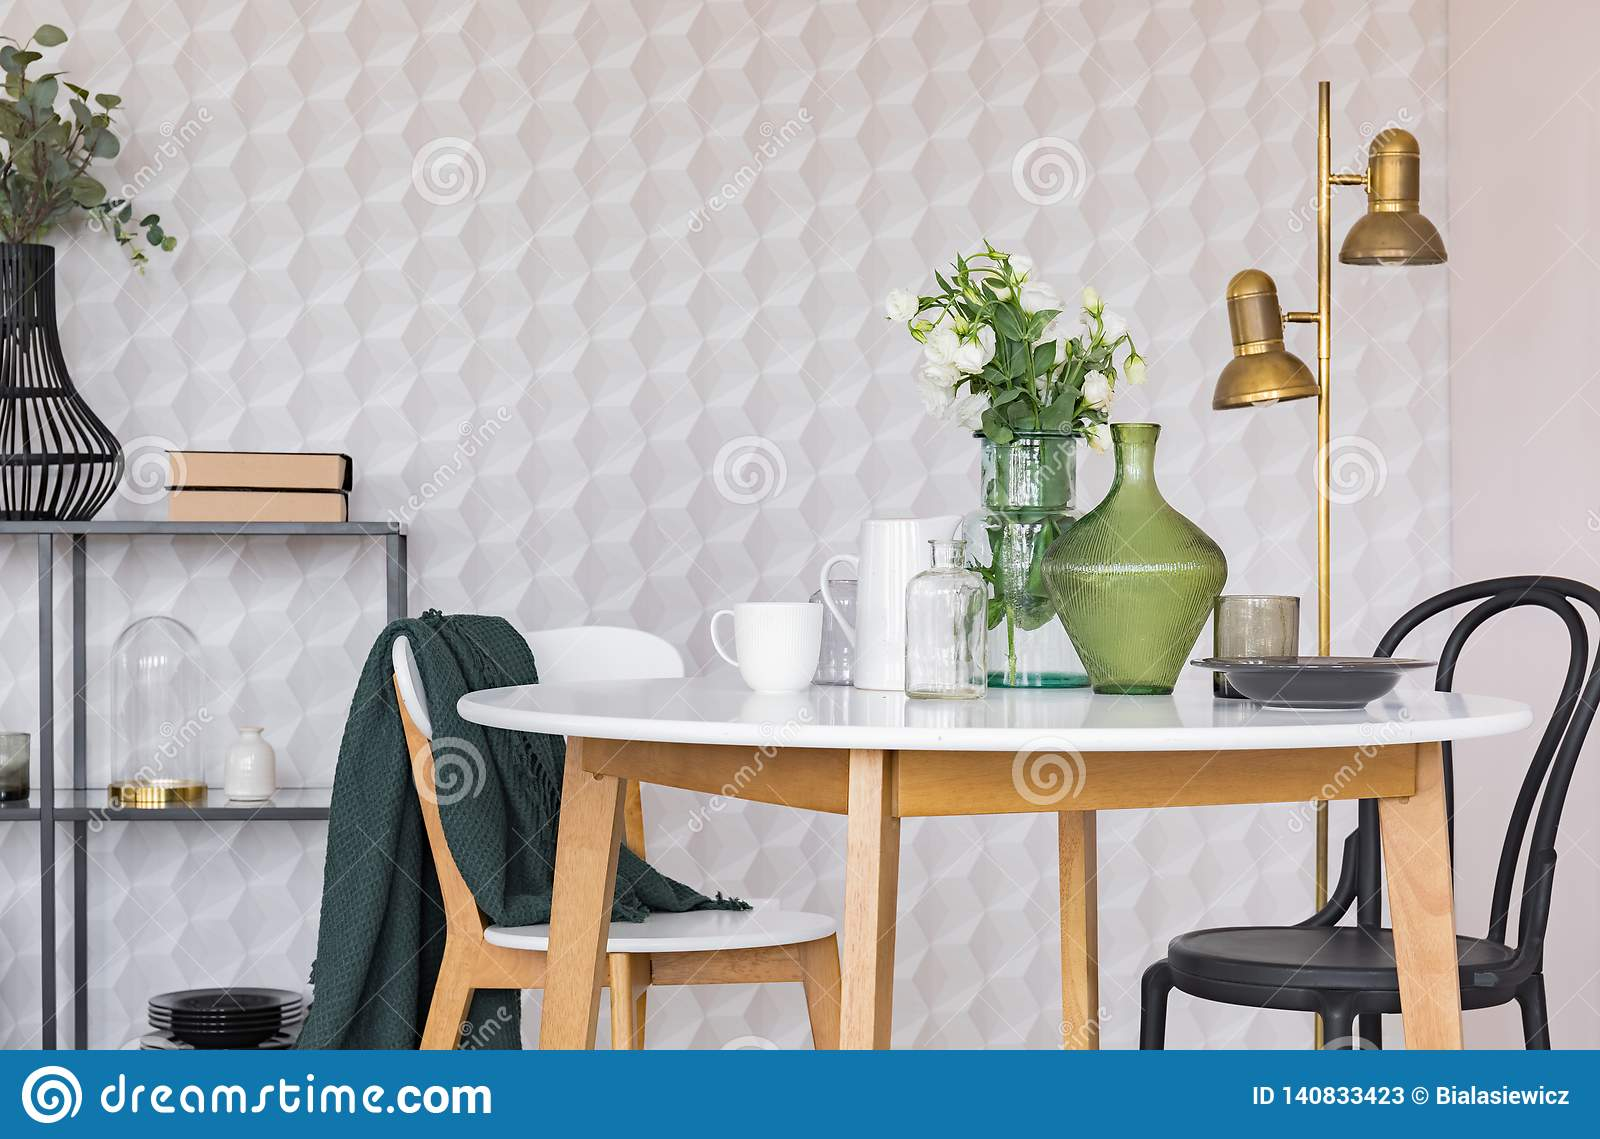 Black and white chair at wooden table in dining room interior with flowers and gold lamp. Real photo